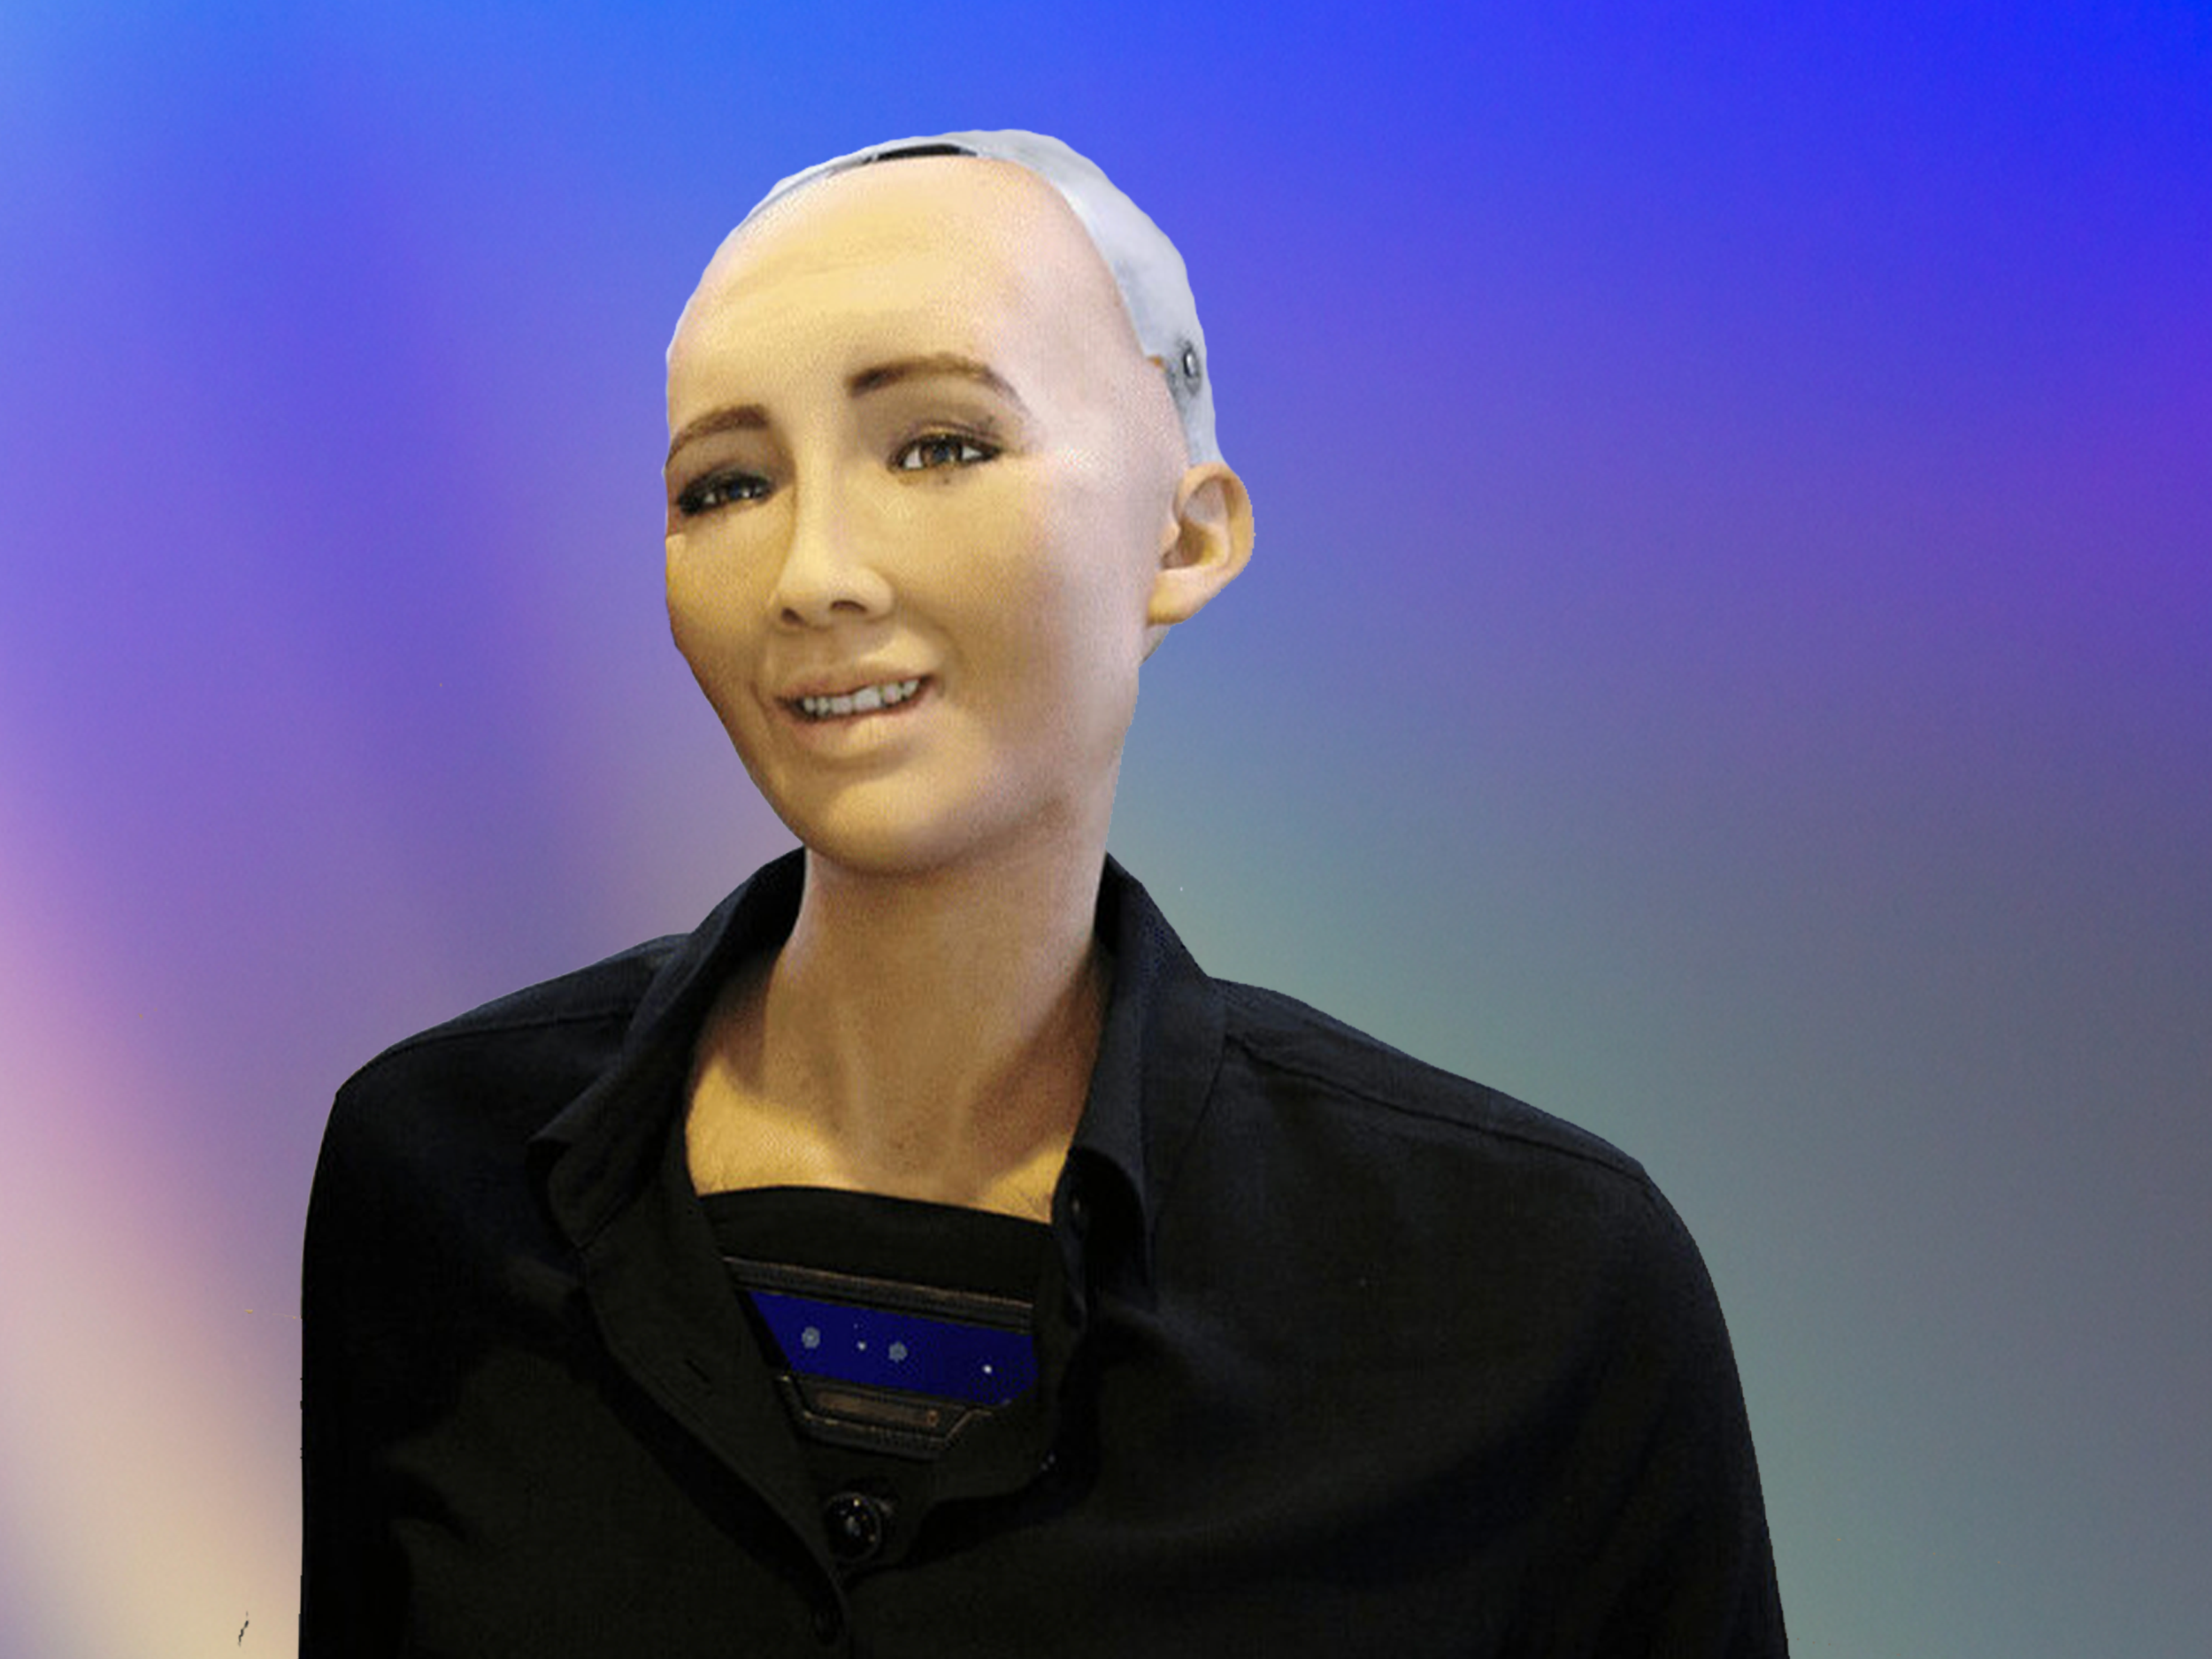 Everything you need to know this week, from robot companions to the raffle that might send you to space